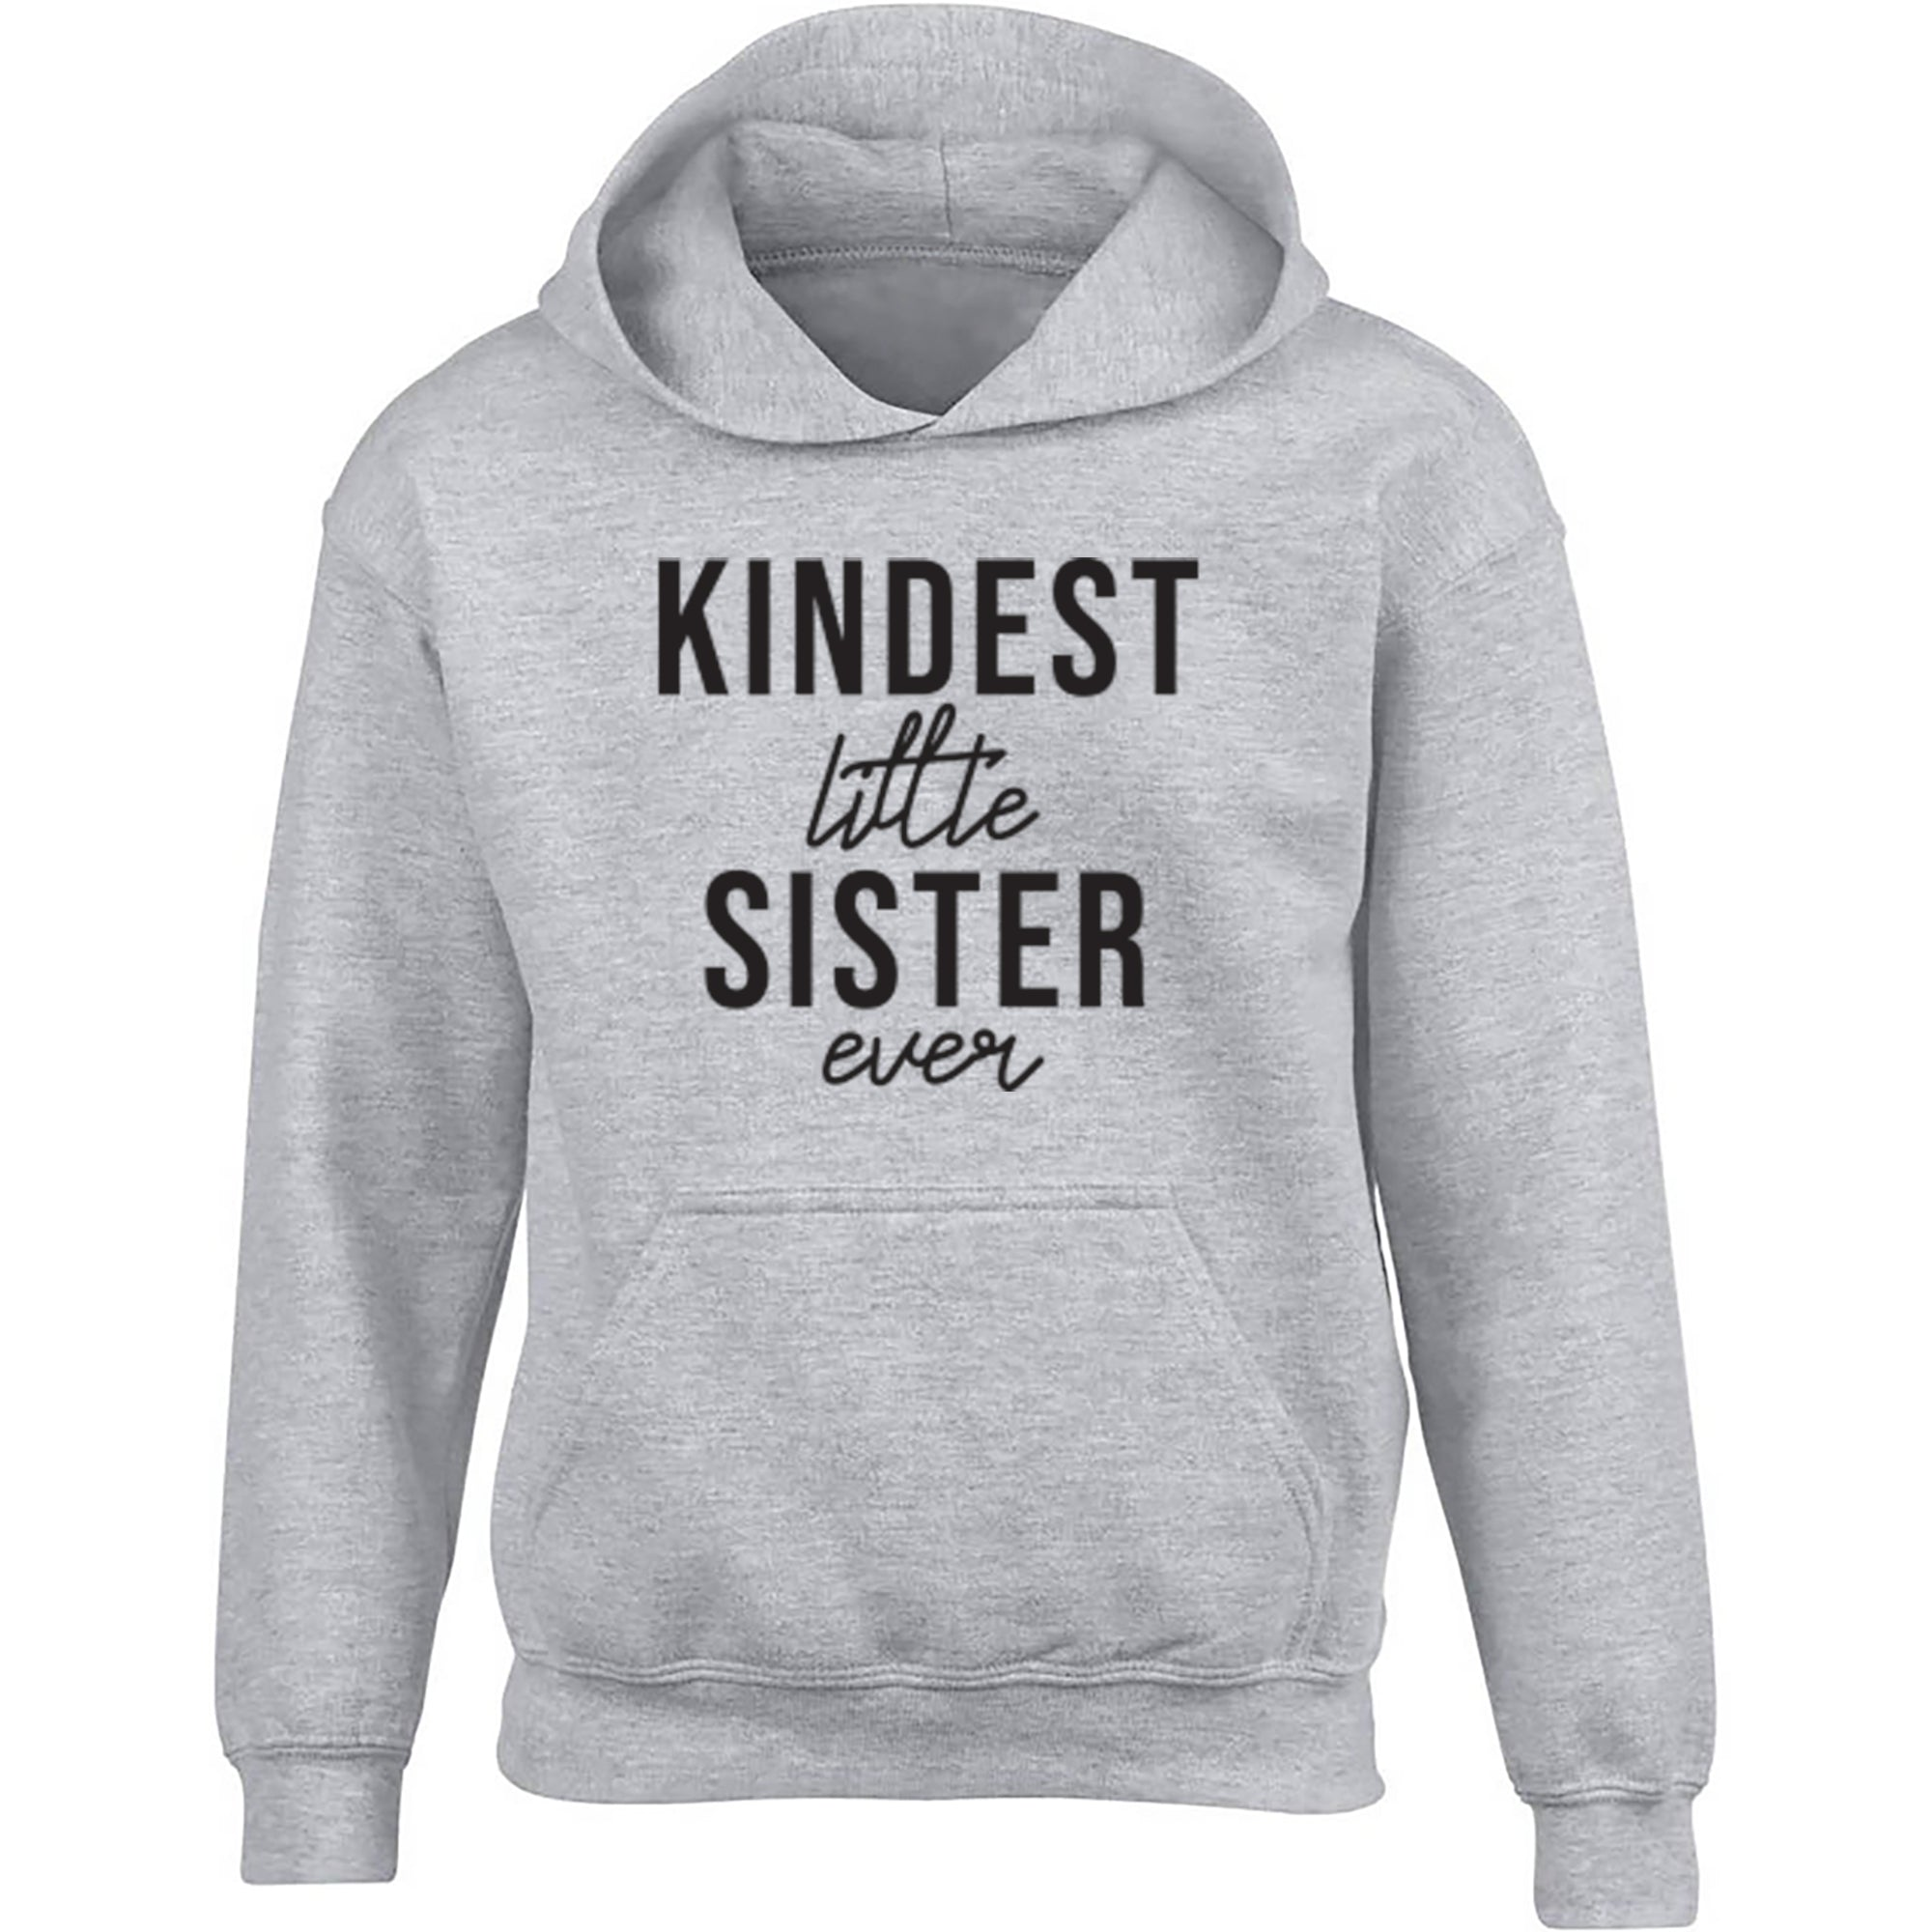 Kindest Little Sister Ever Childrens Ages 3/4-12/14 Unisex Hoodie S0507 - Illustrated Identity Ltd.